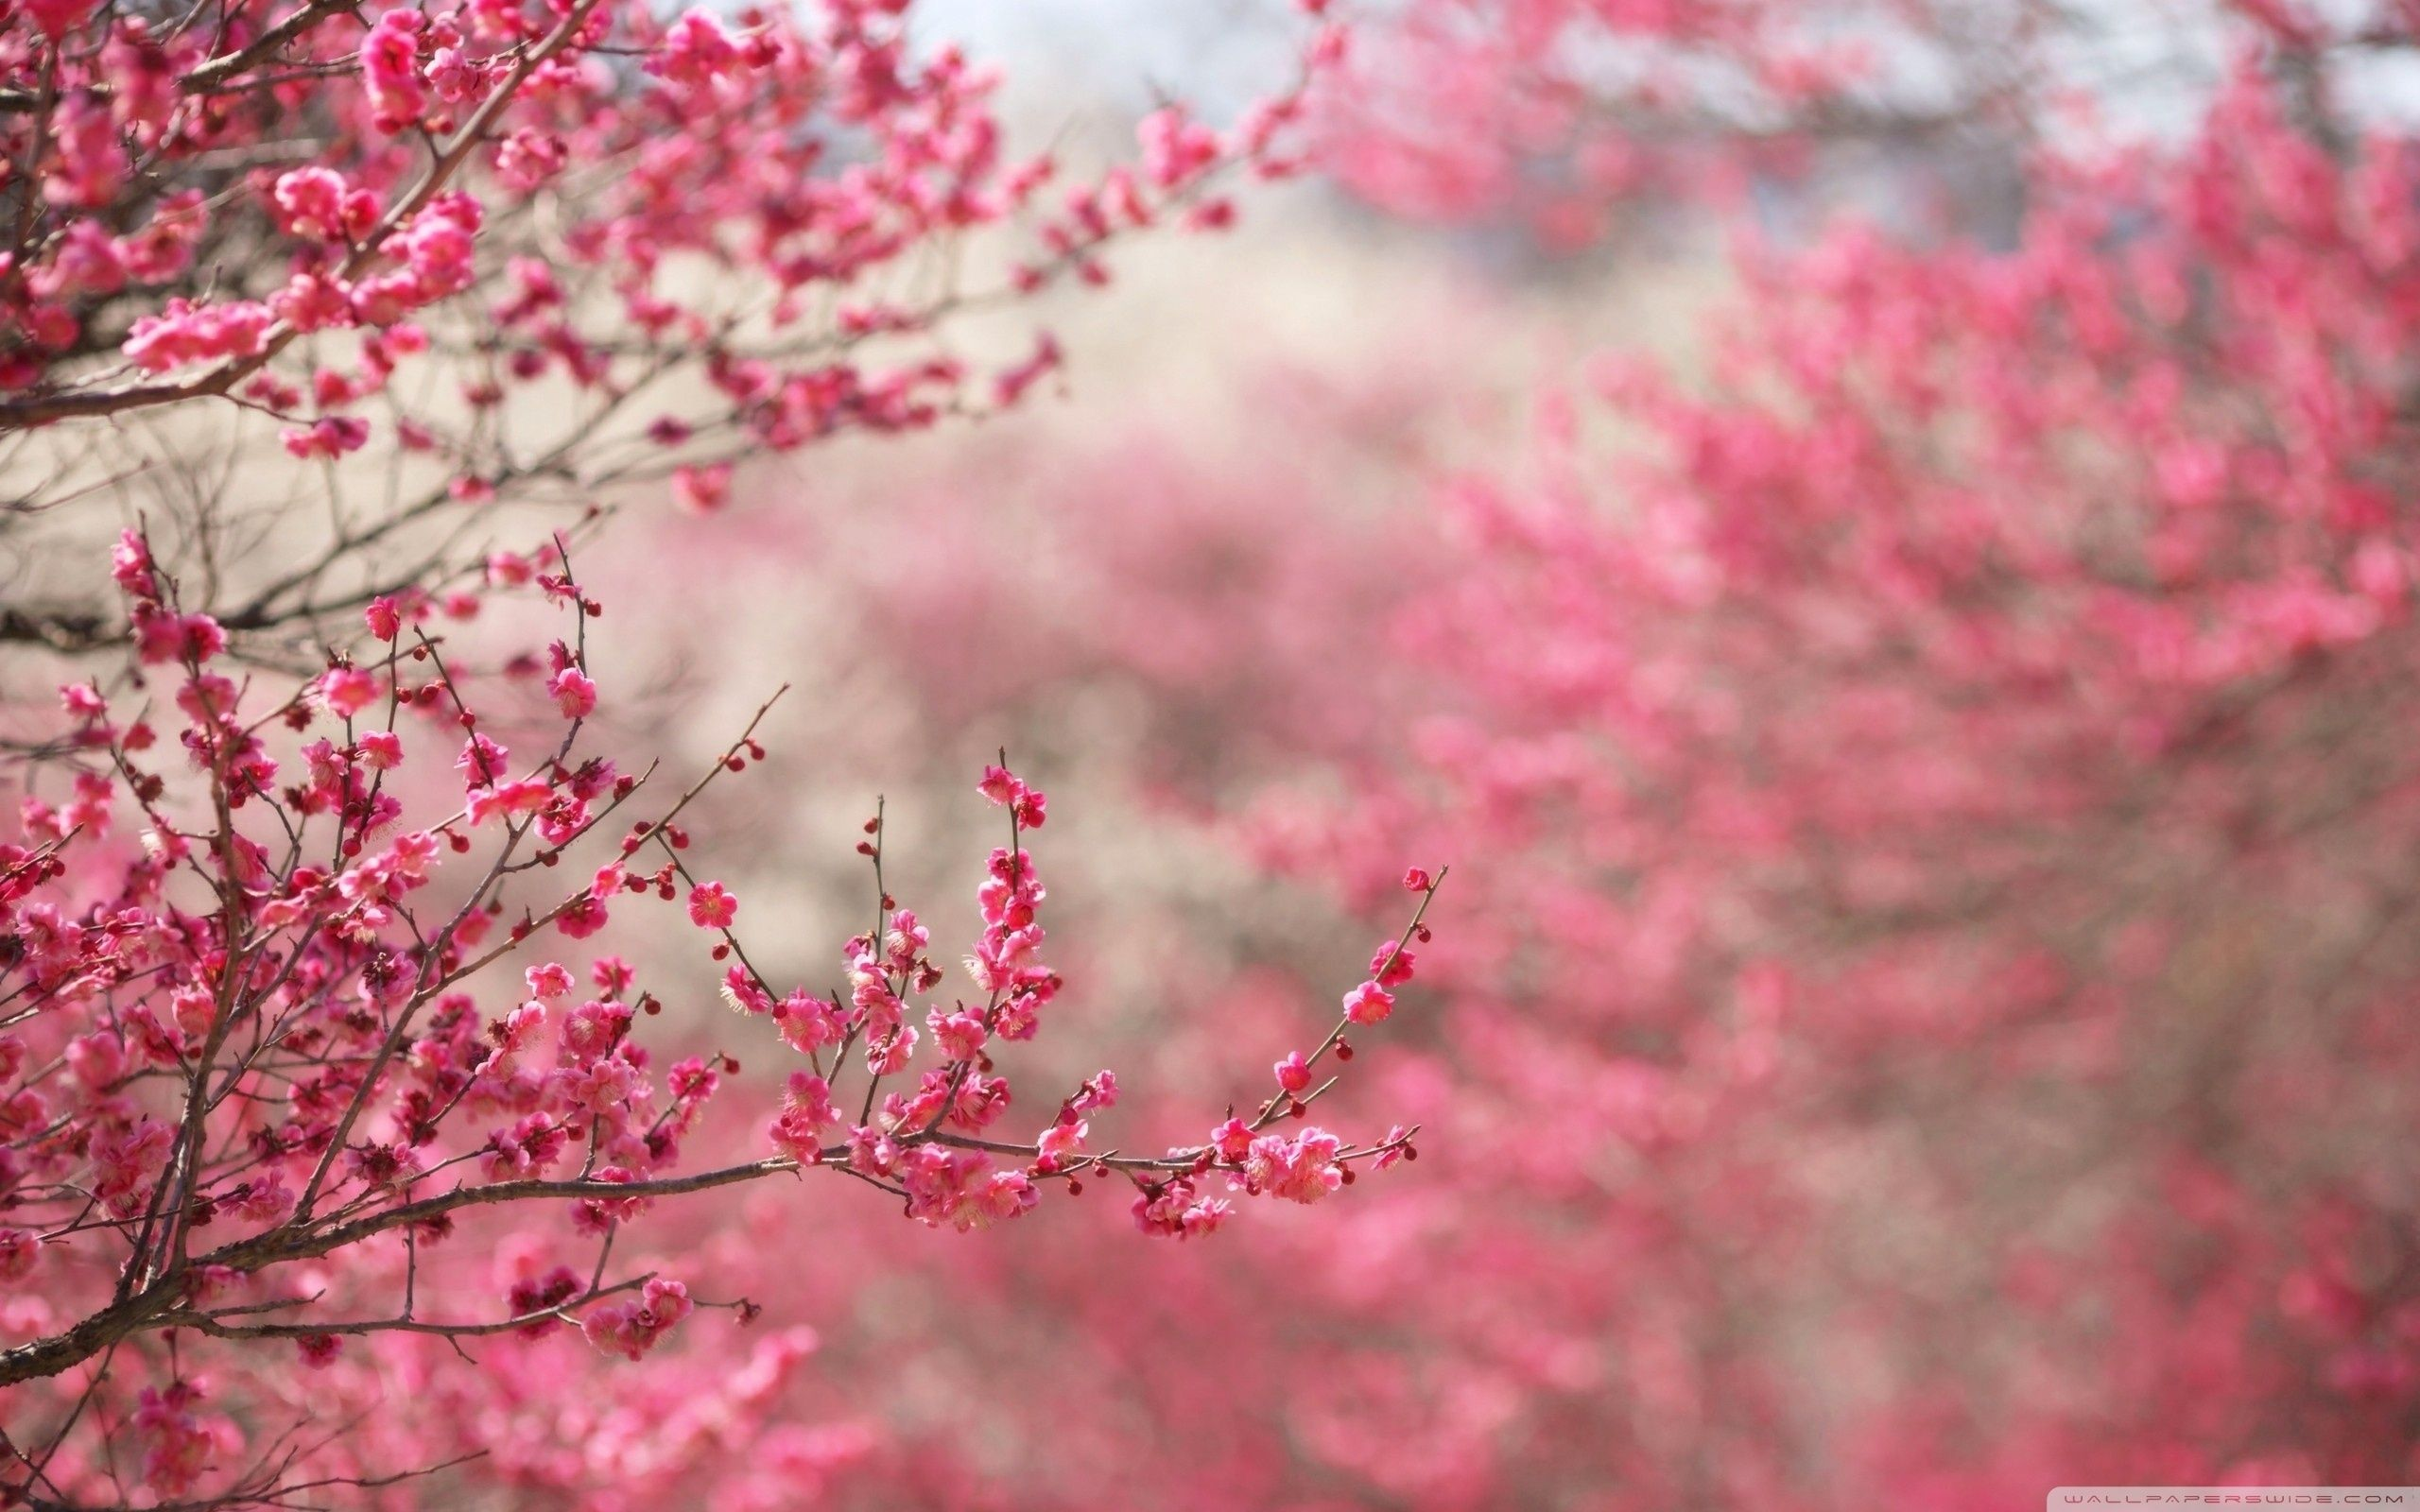 10 Most Popular Sakura Cherry Blossom Wallpaper Full Hd 1920 1080 For Pc Desktop Spring Desktop Wallpaper Cherry Blossom Wallpaper Pink Flowers Wallpaper